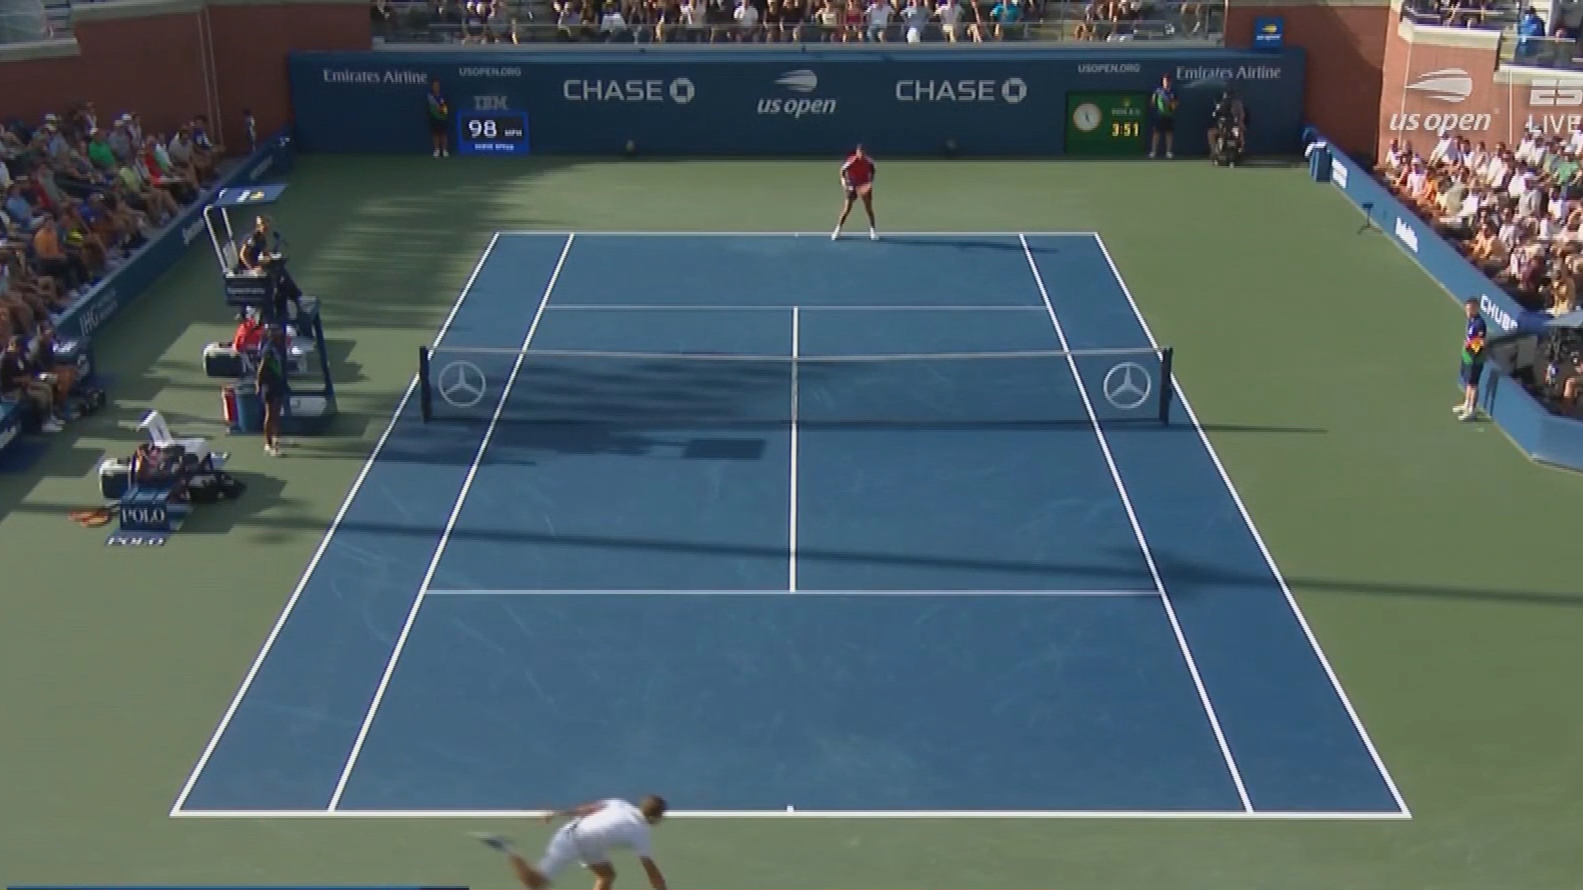 Popyrin goes down at US Open